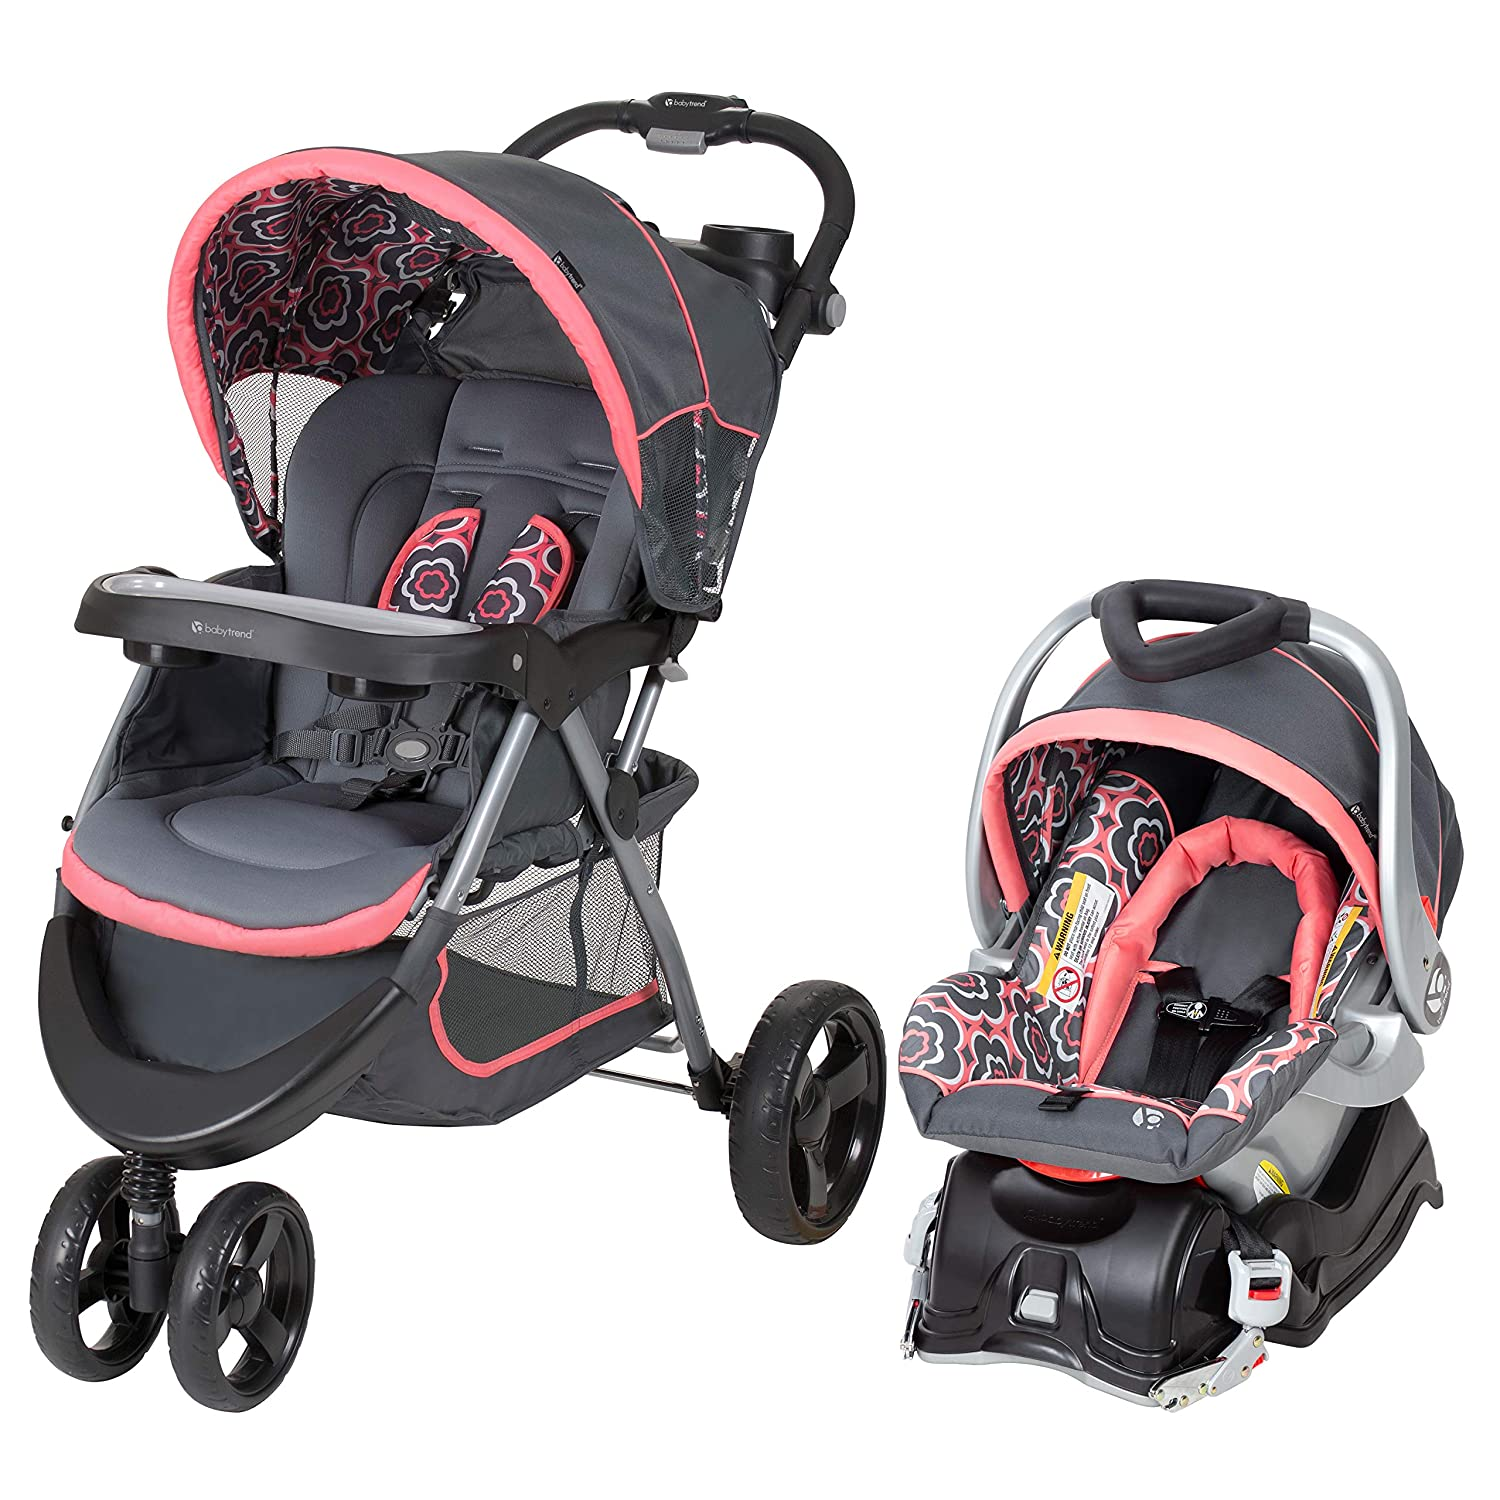 Baby Trend Nexton Travel System, Coral Floral TS41227C